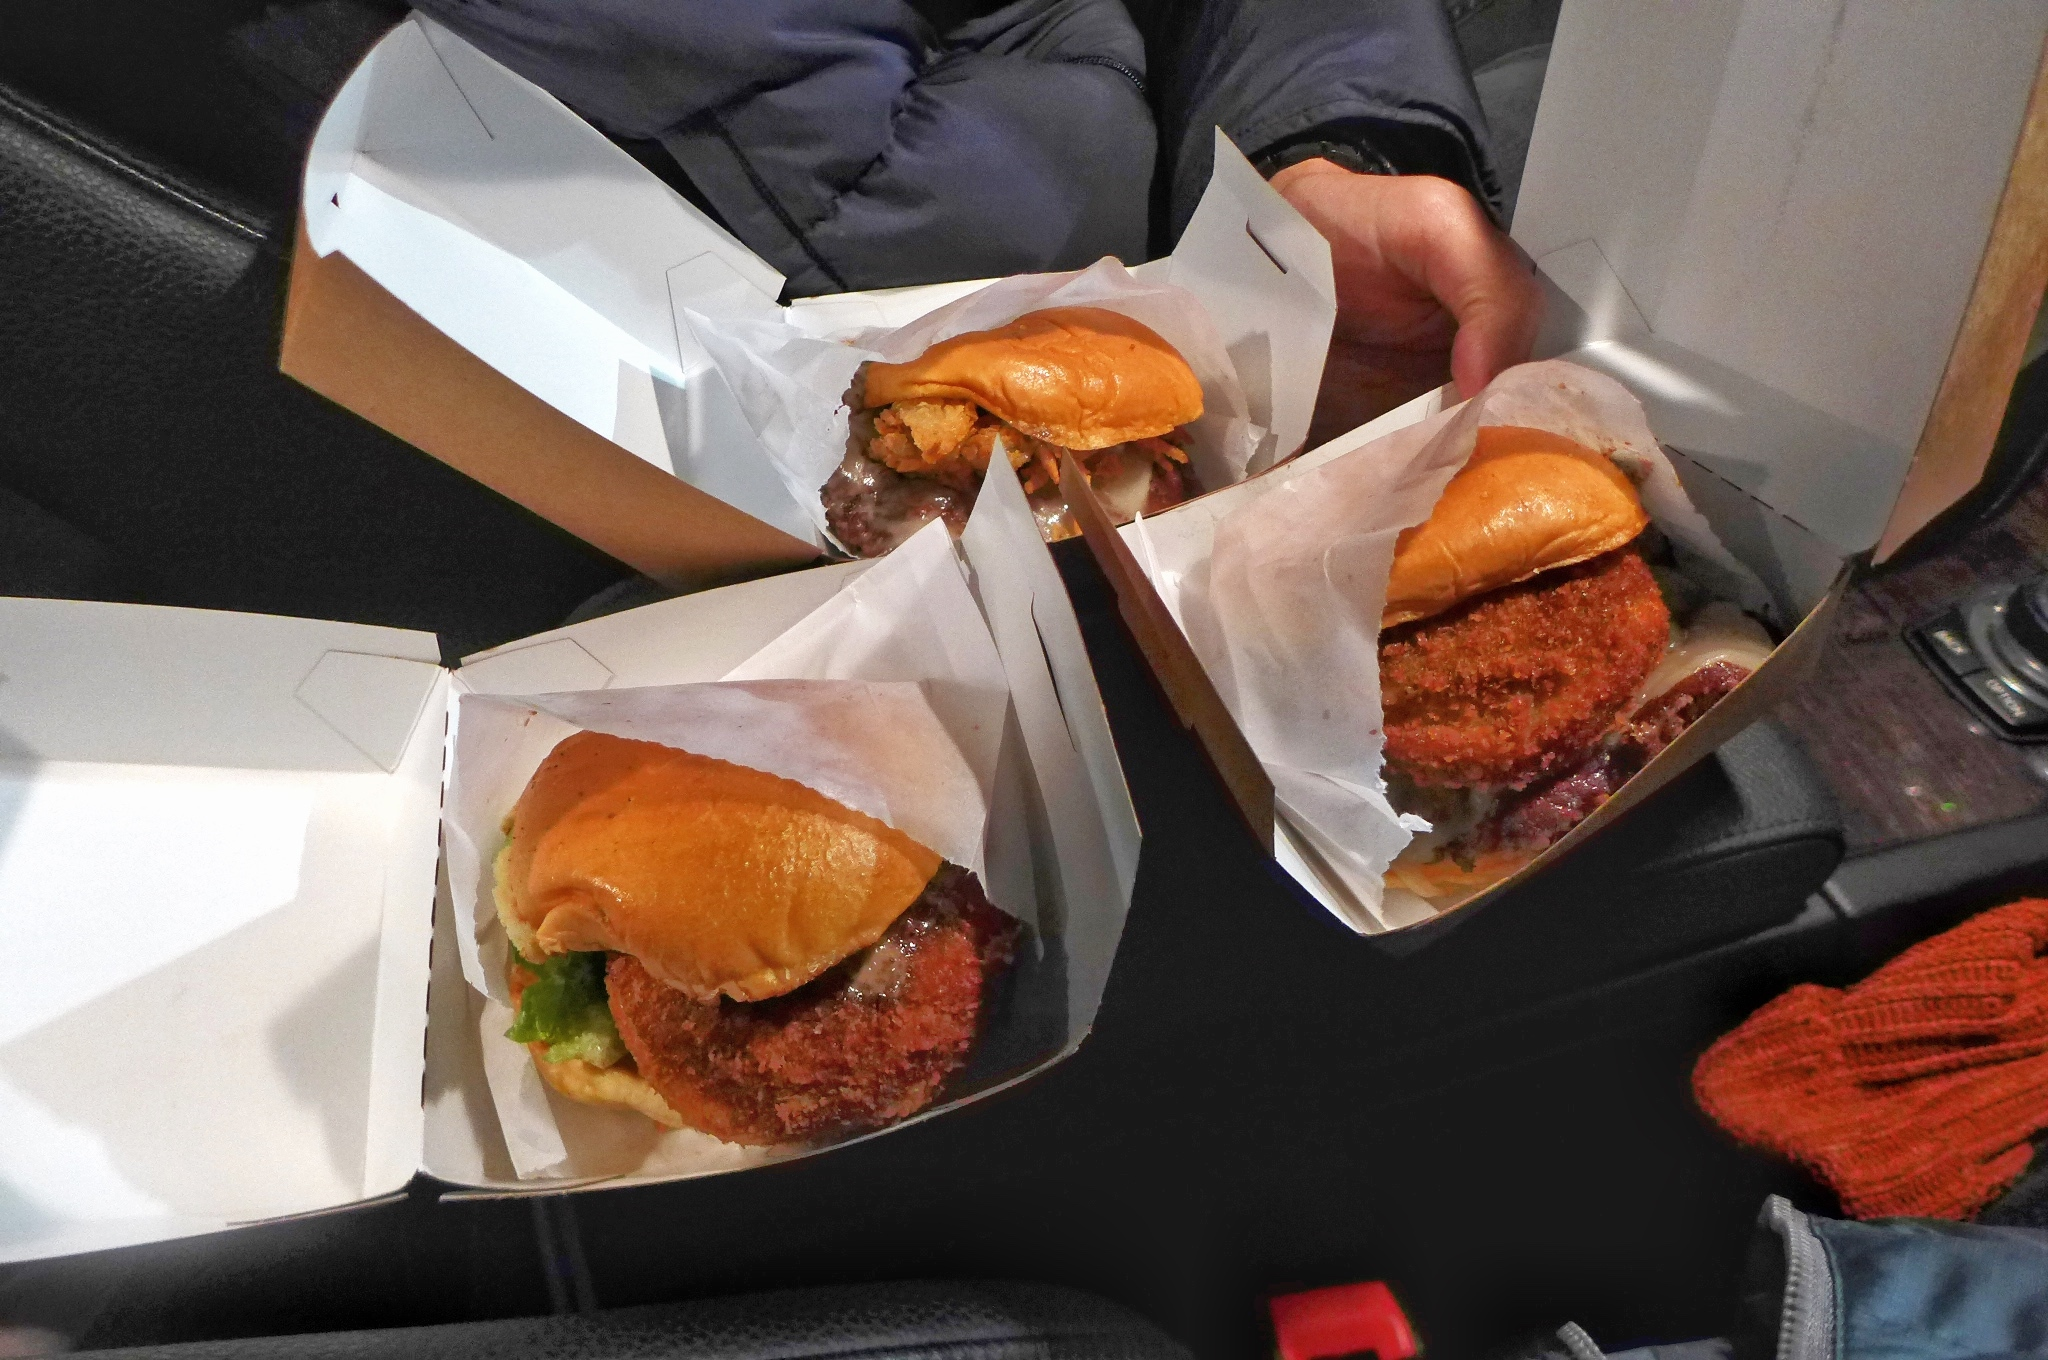 Three burgers in boxes in the darkened interior of a car.